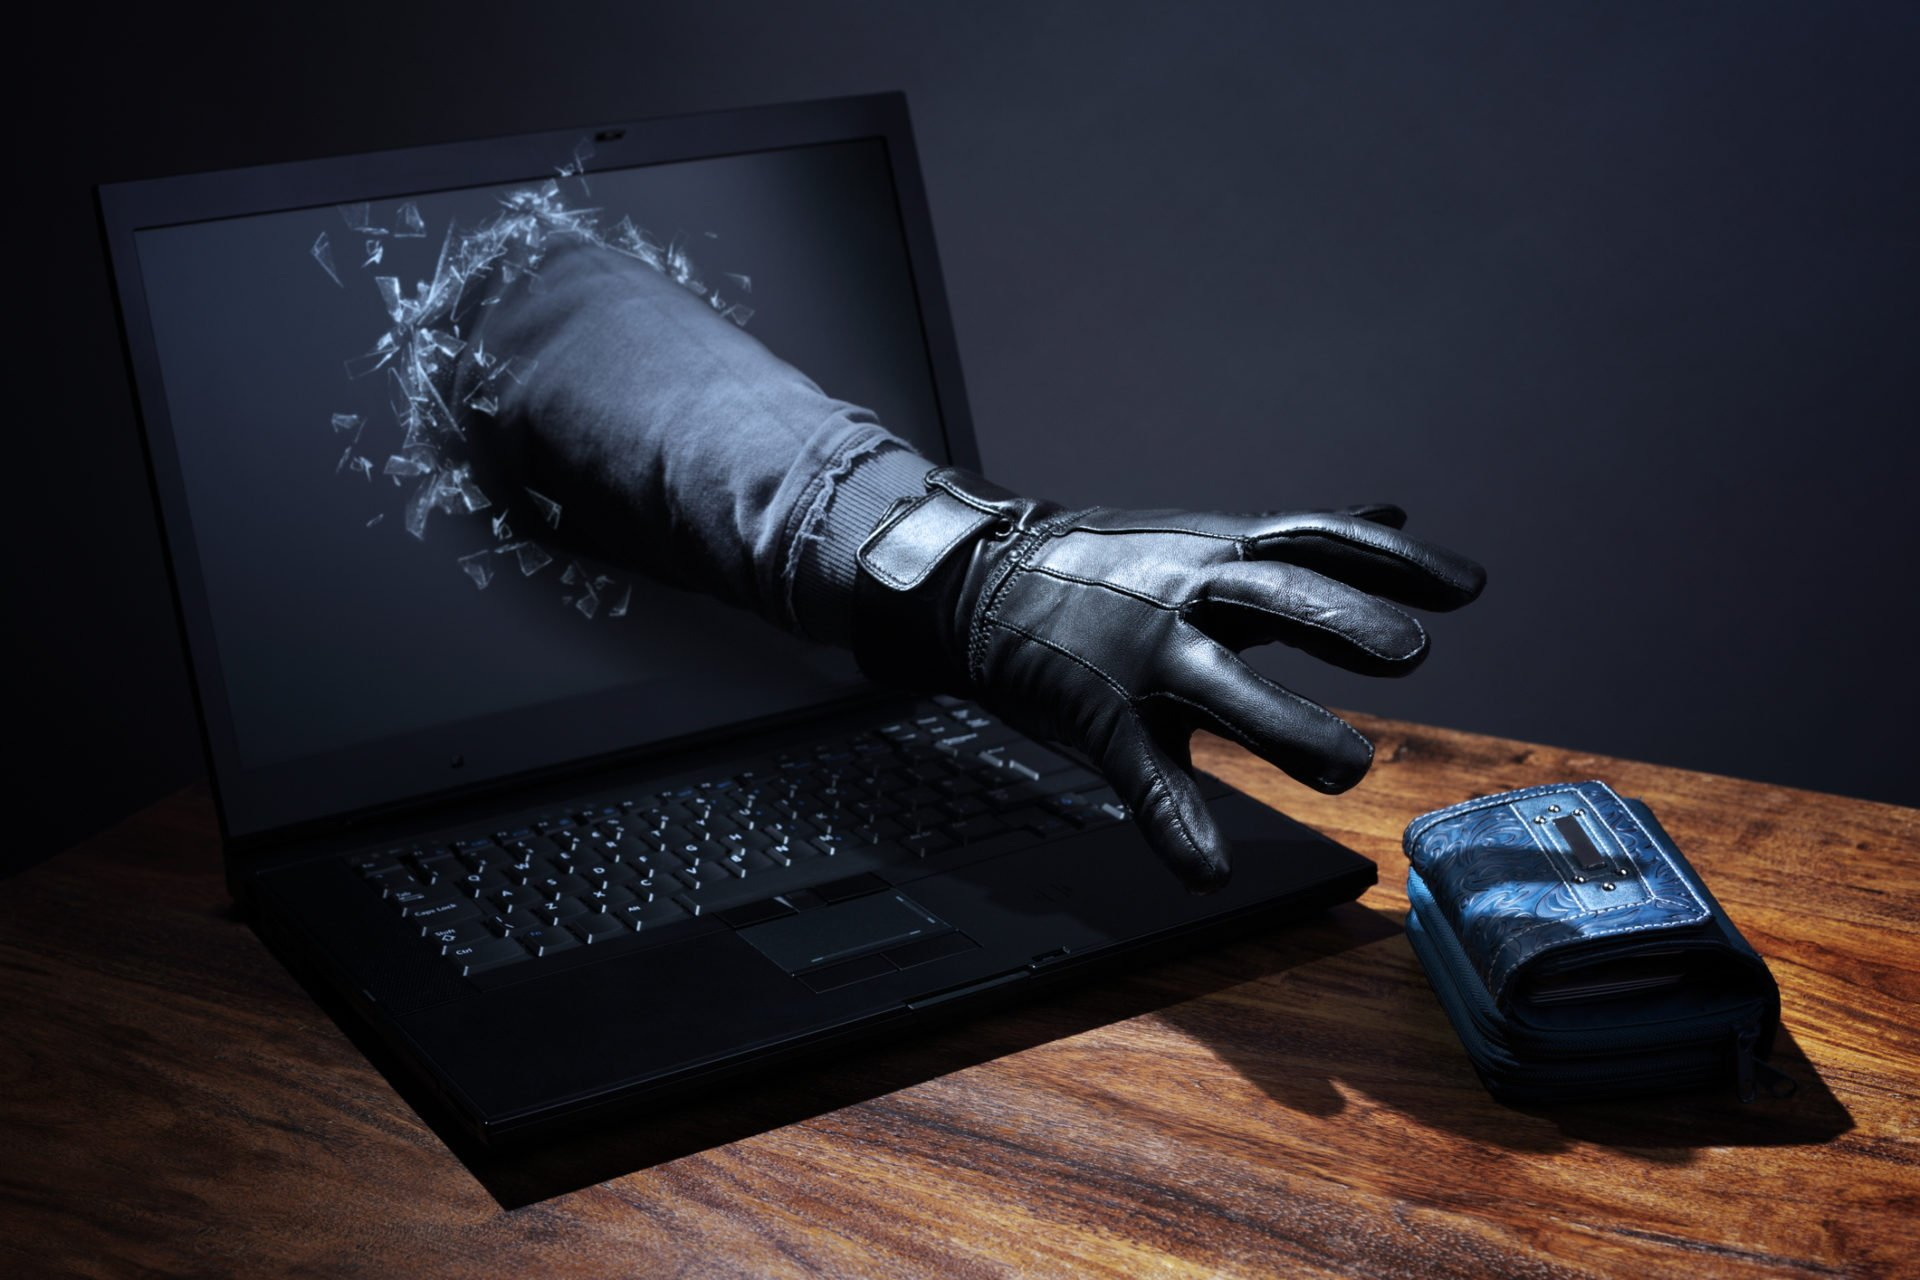 stealing cyber crime ethereum